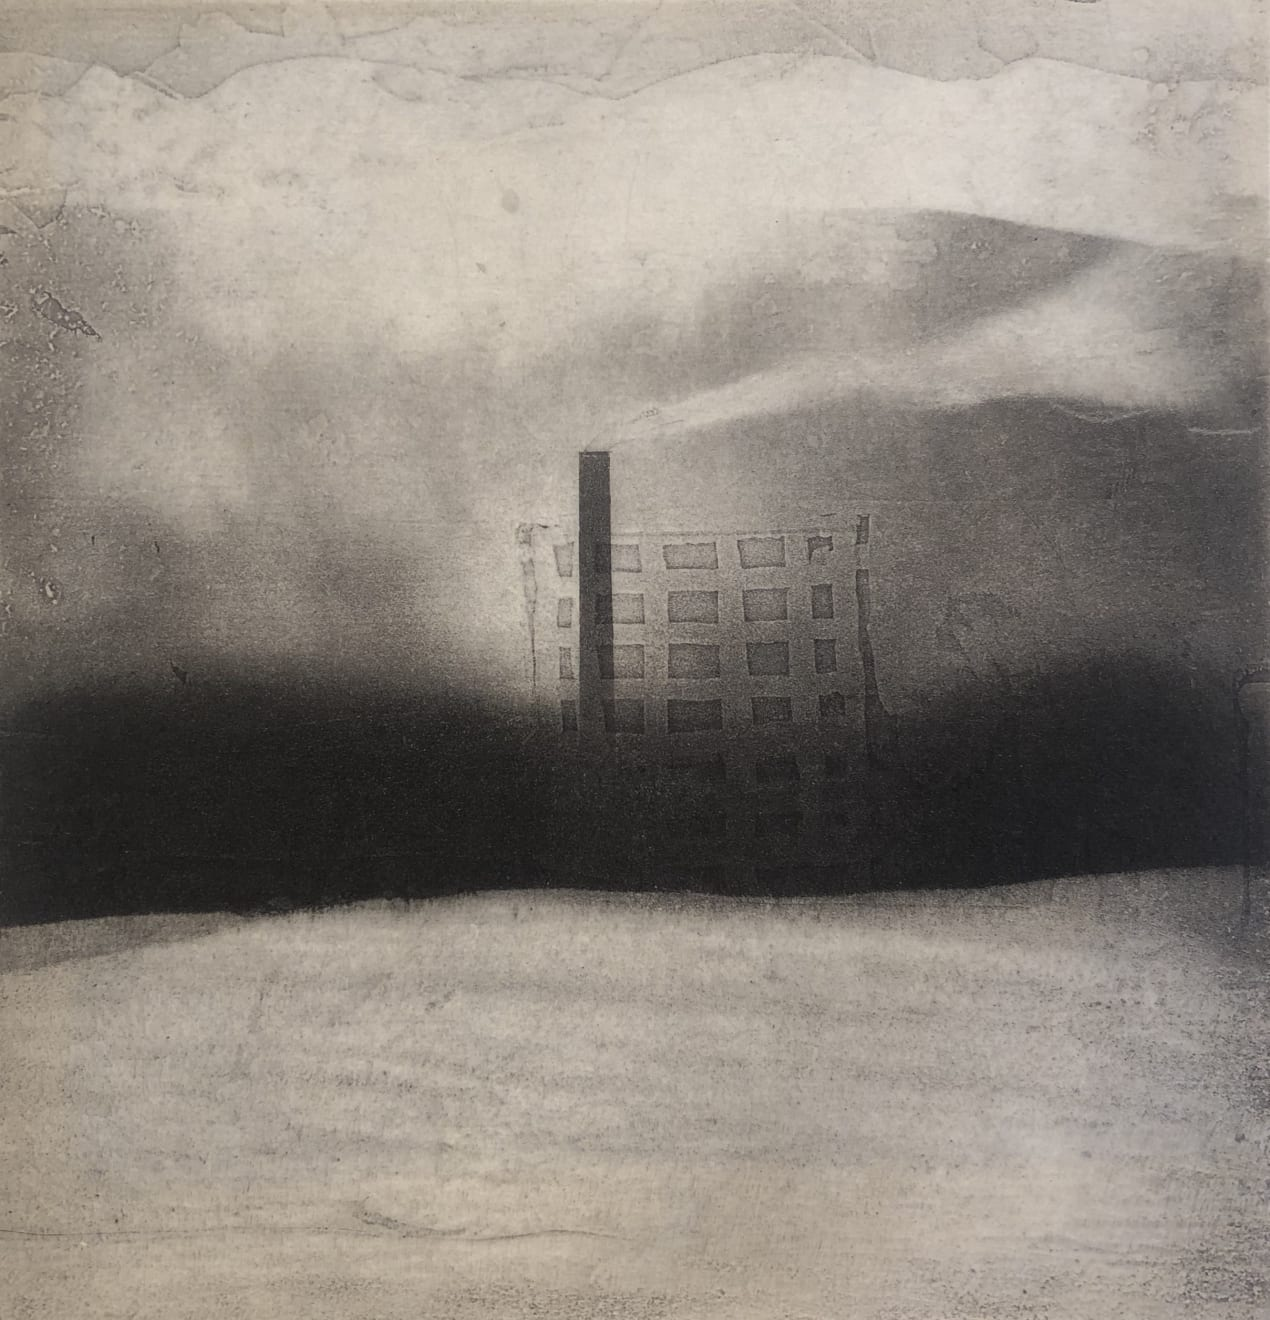 Norman Ackroyd, West Riding, 1973